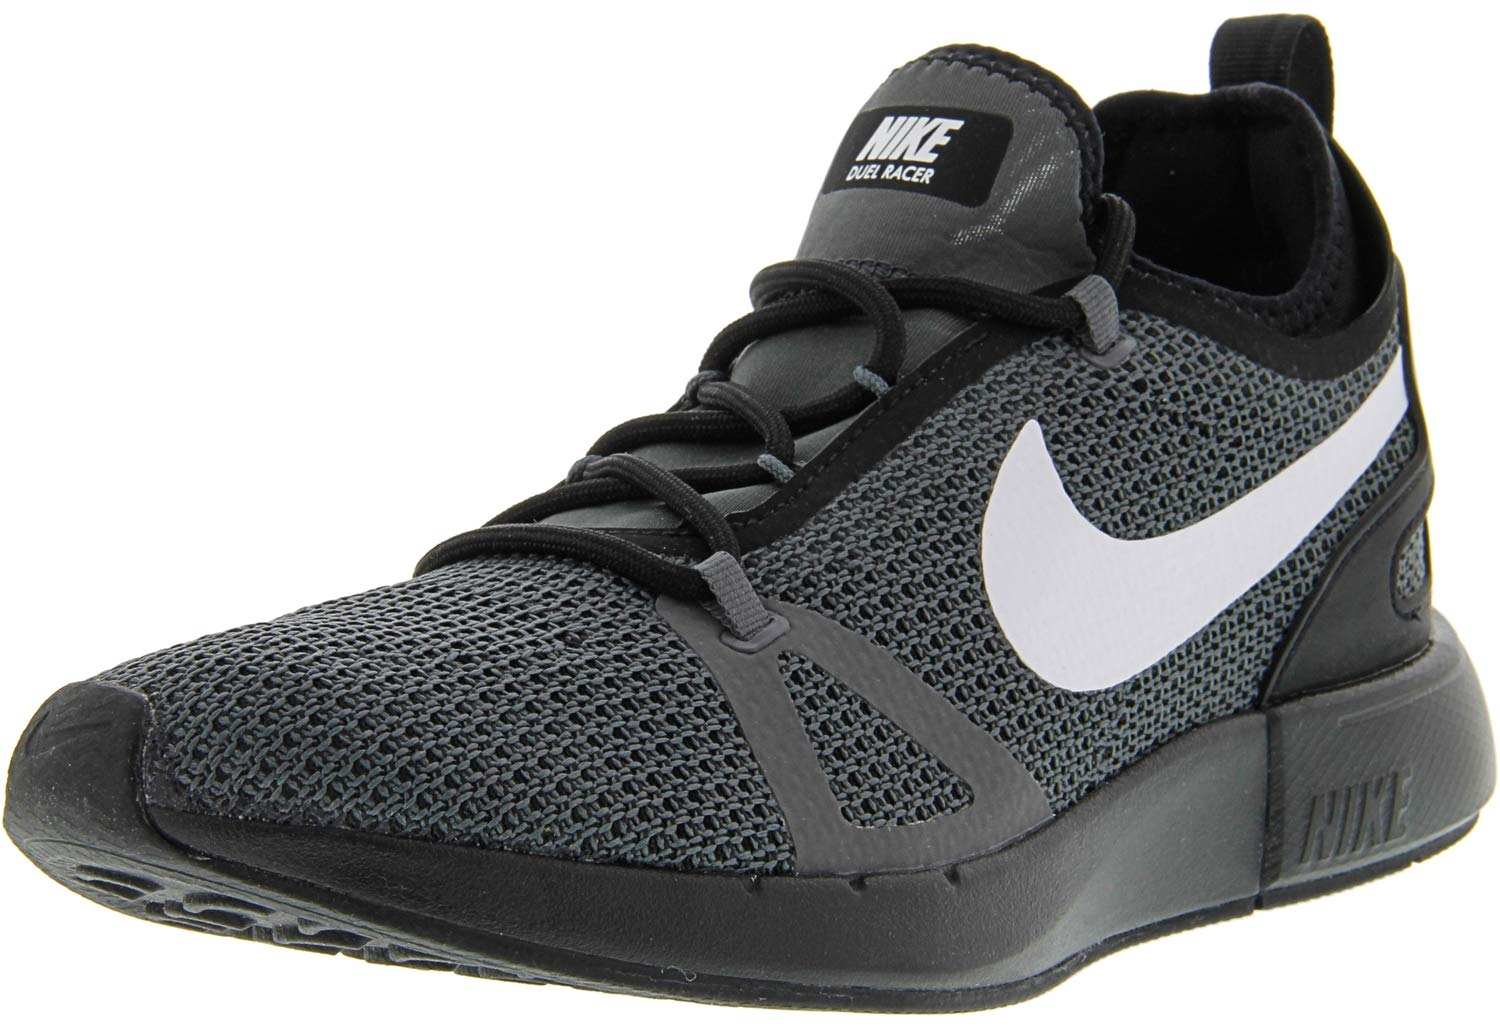 low priced a31bd 0b445 Galleon - Nike Women s Duel Racer Black White Dark Grey Ankle-High Running  Shoe - 9M